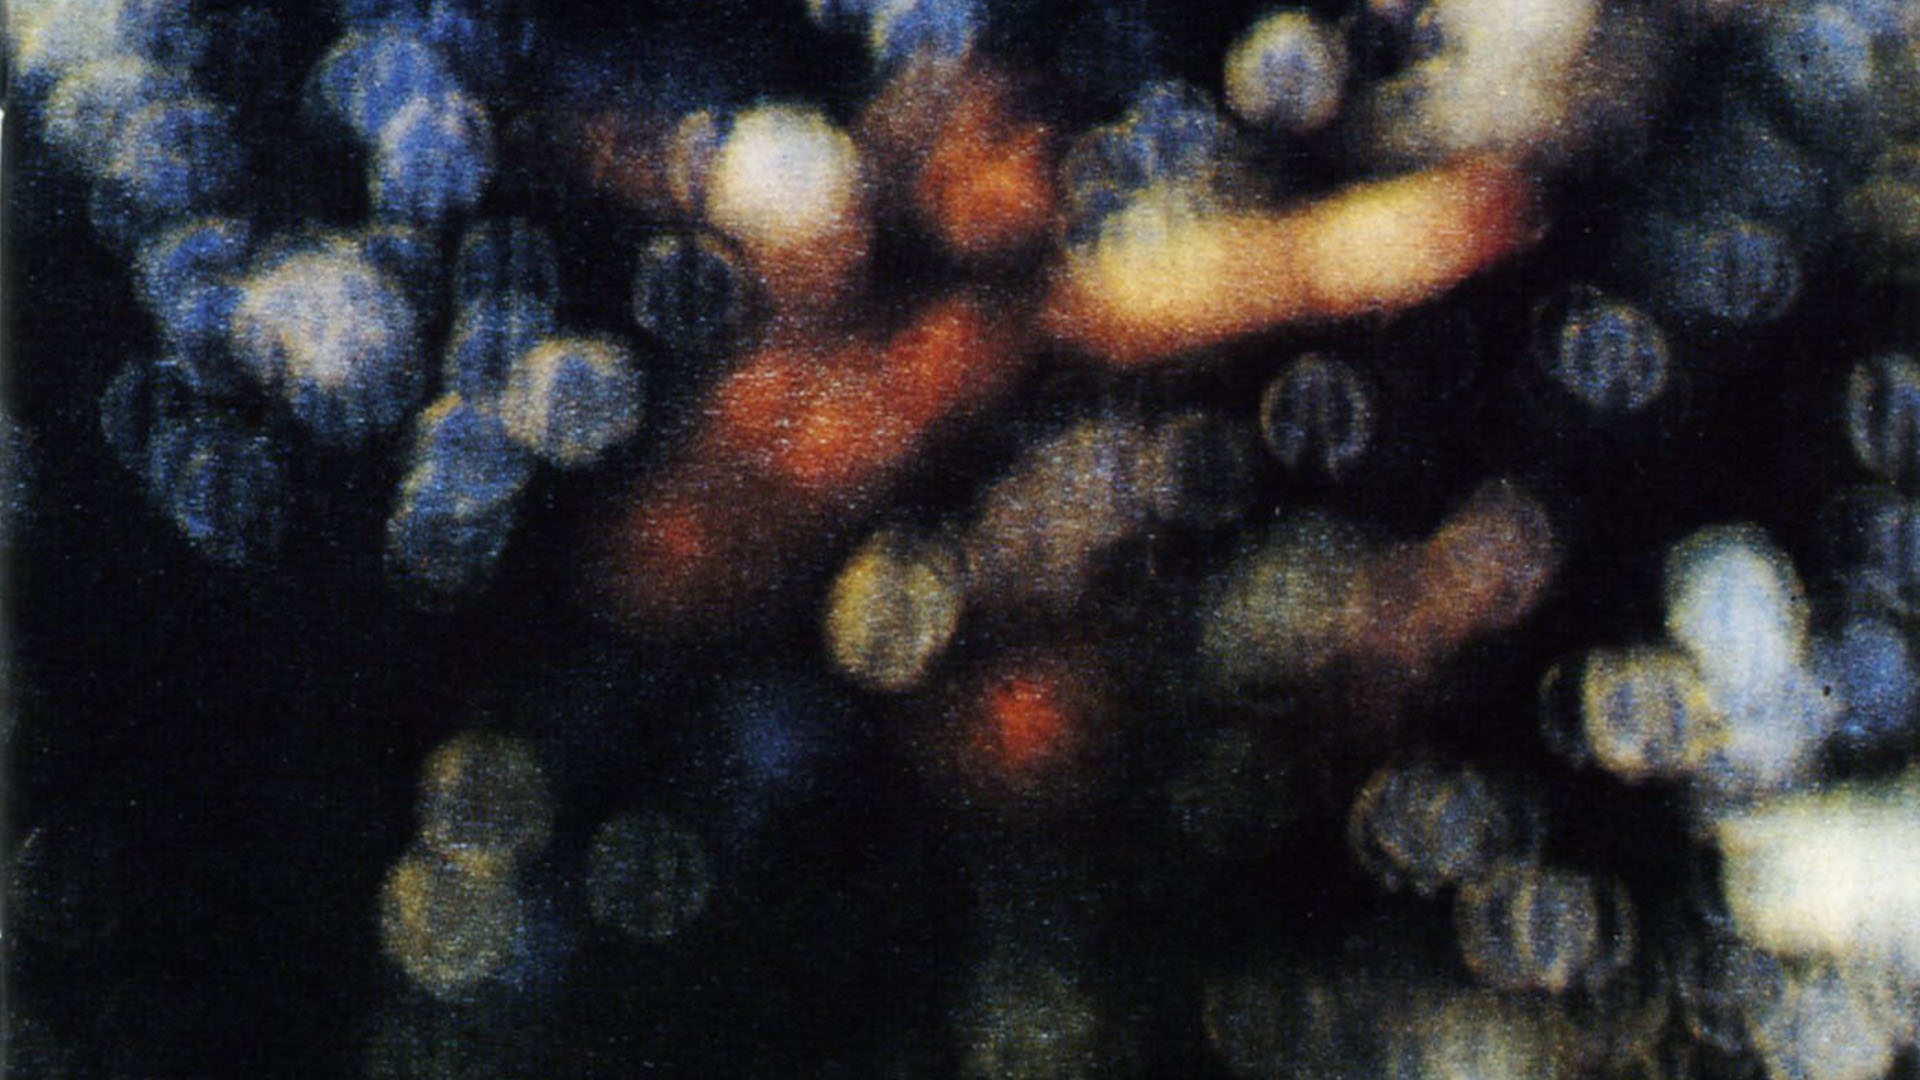 Wet Cement Wallpapers: Pink Floyd - Obscured By Clouds ...